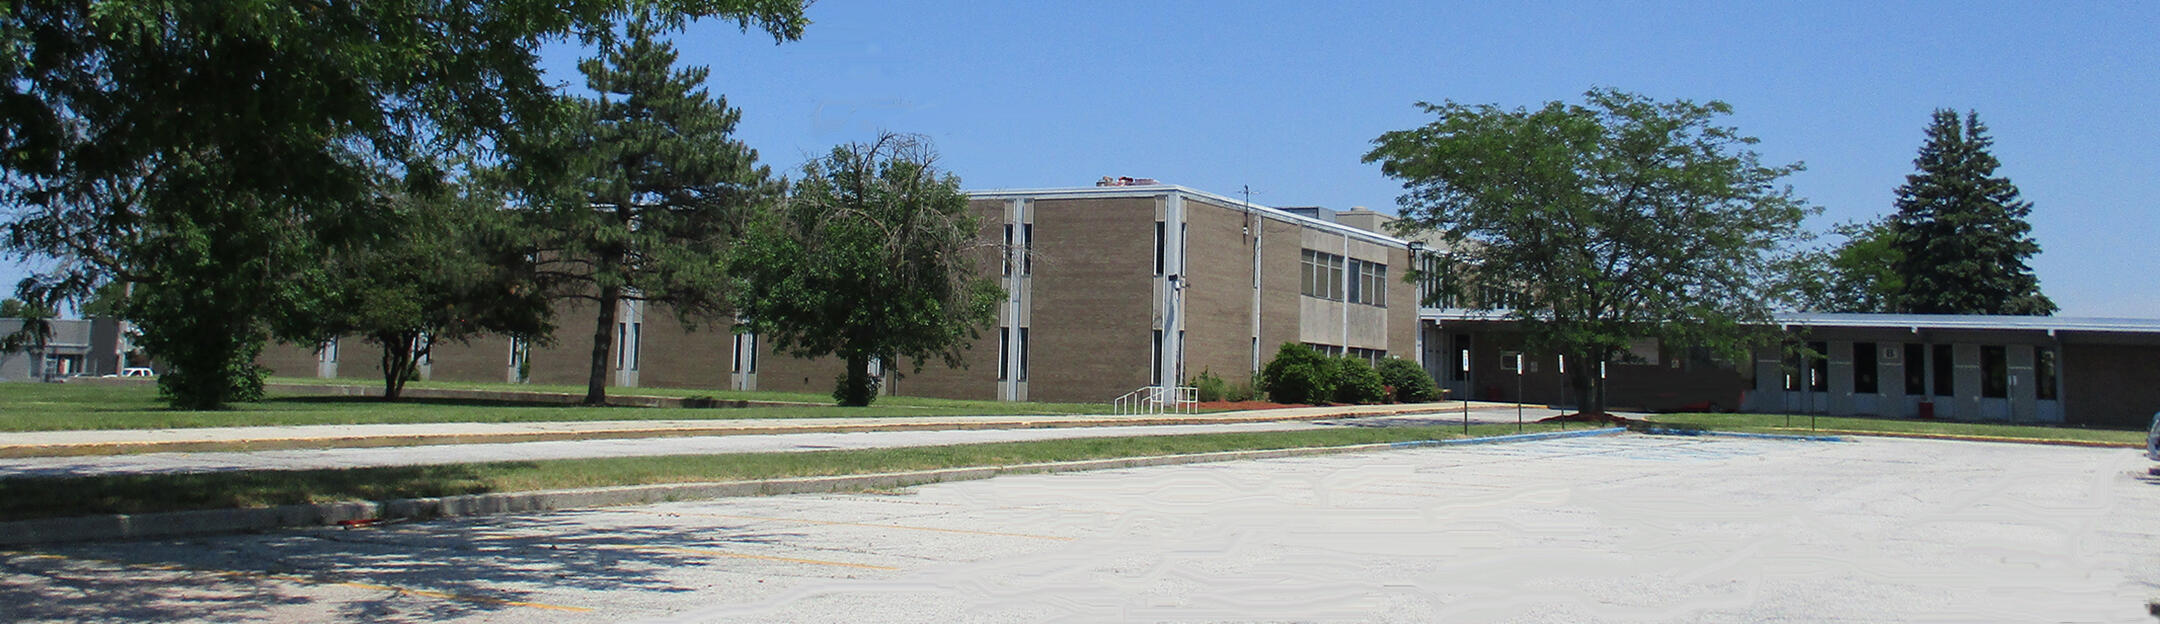 Morton High School Front View